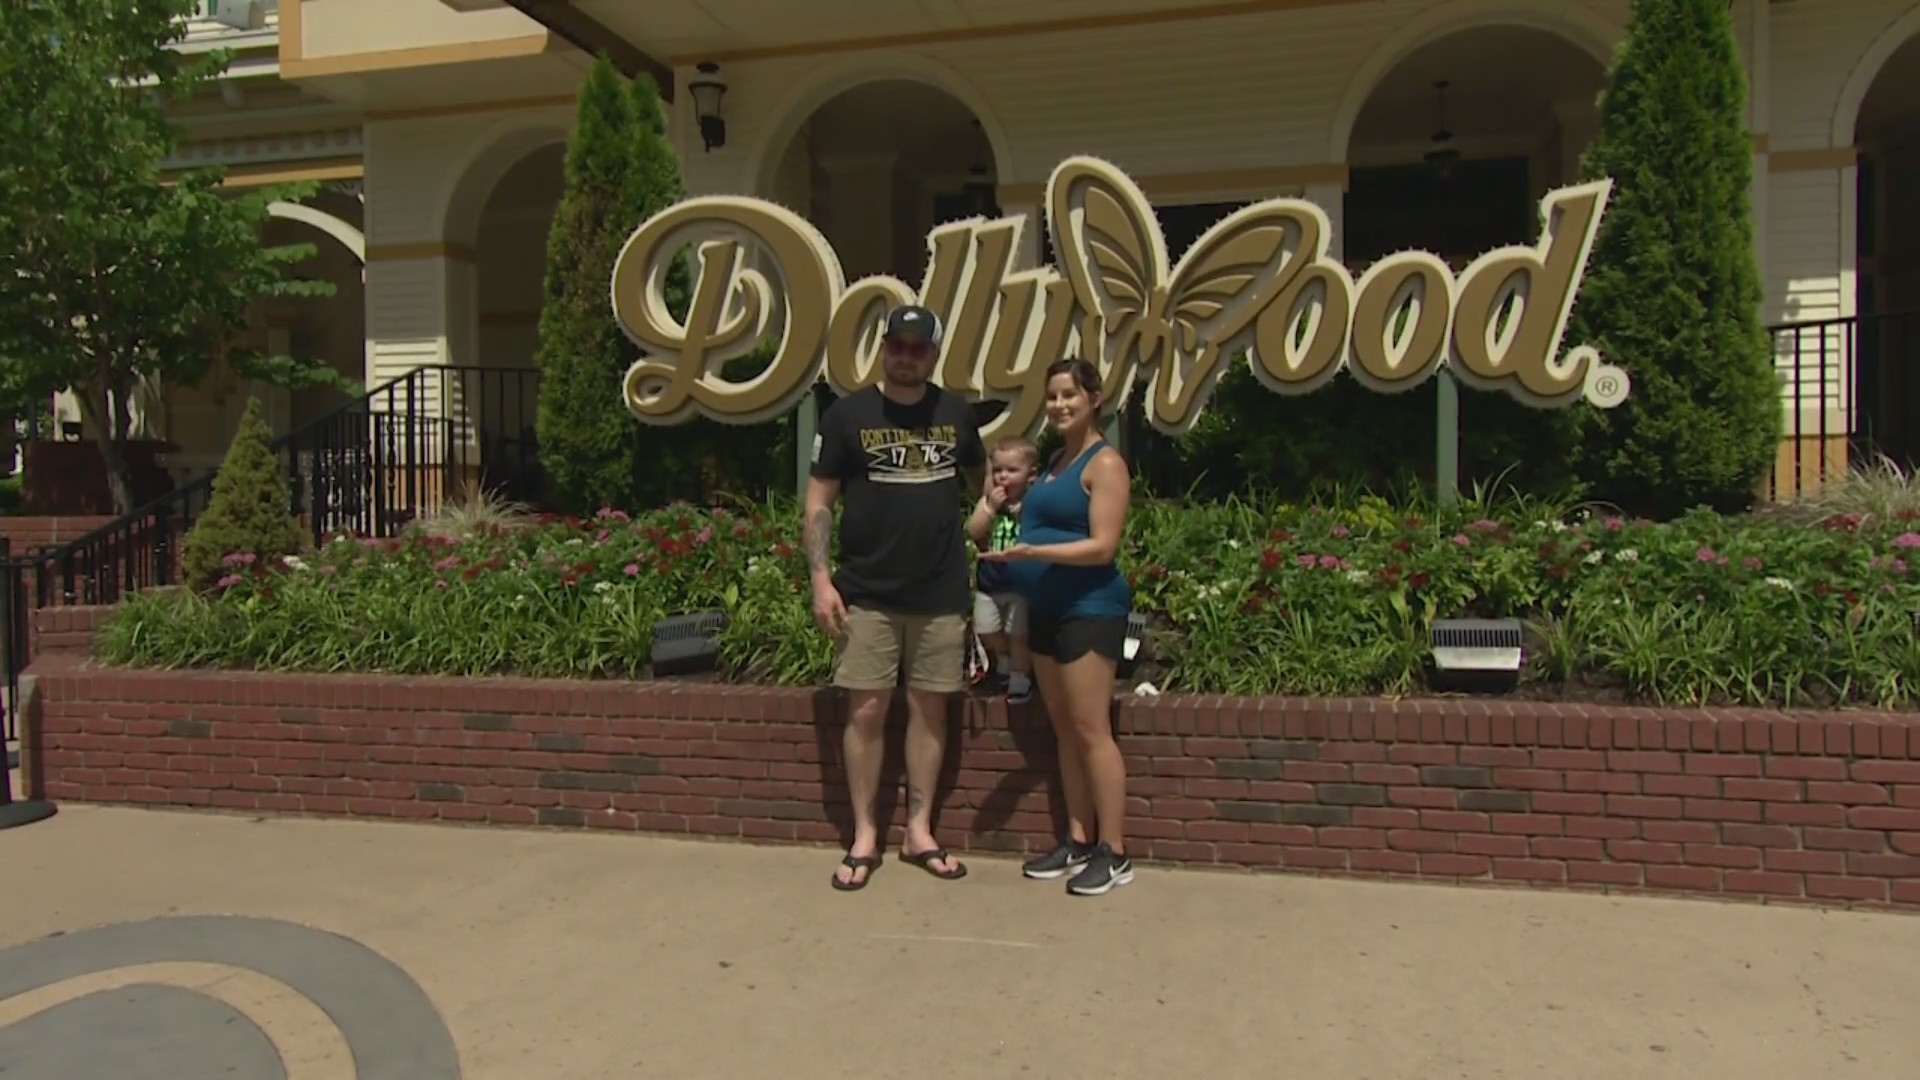 Find family fun at Dollywood | ABC27